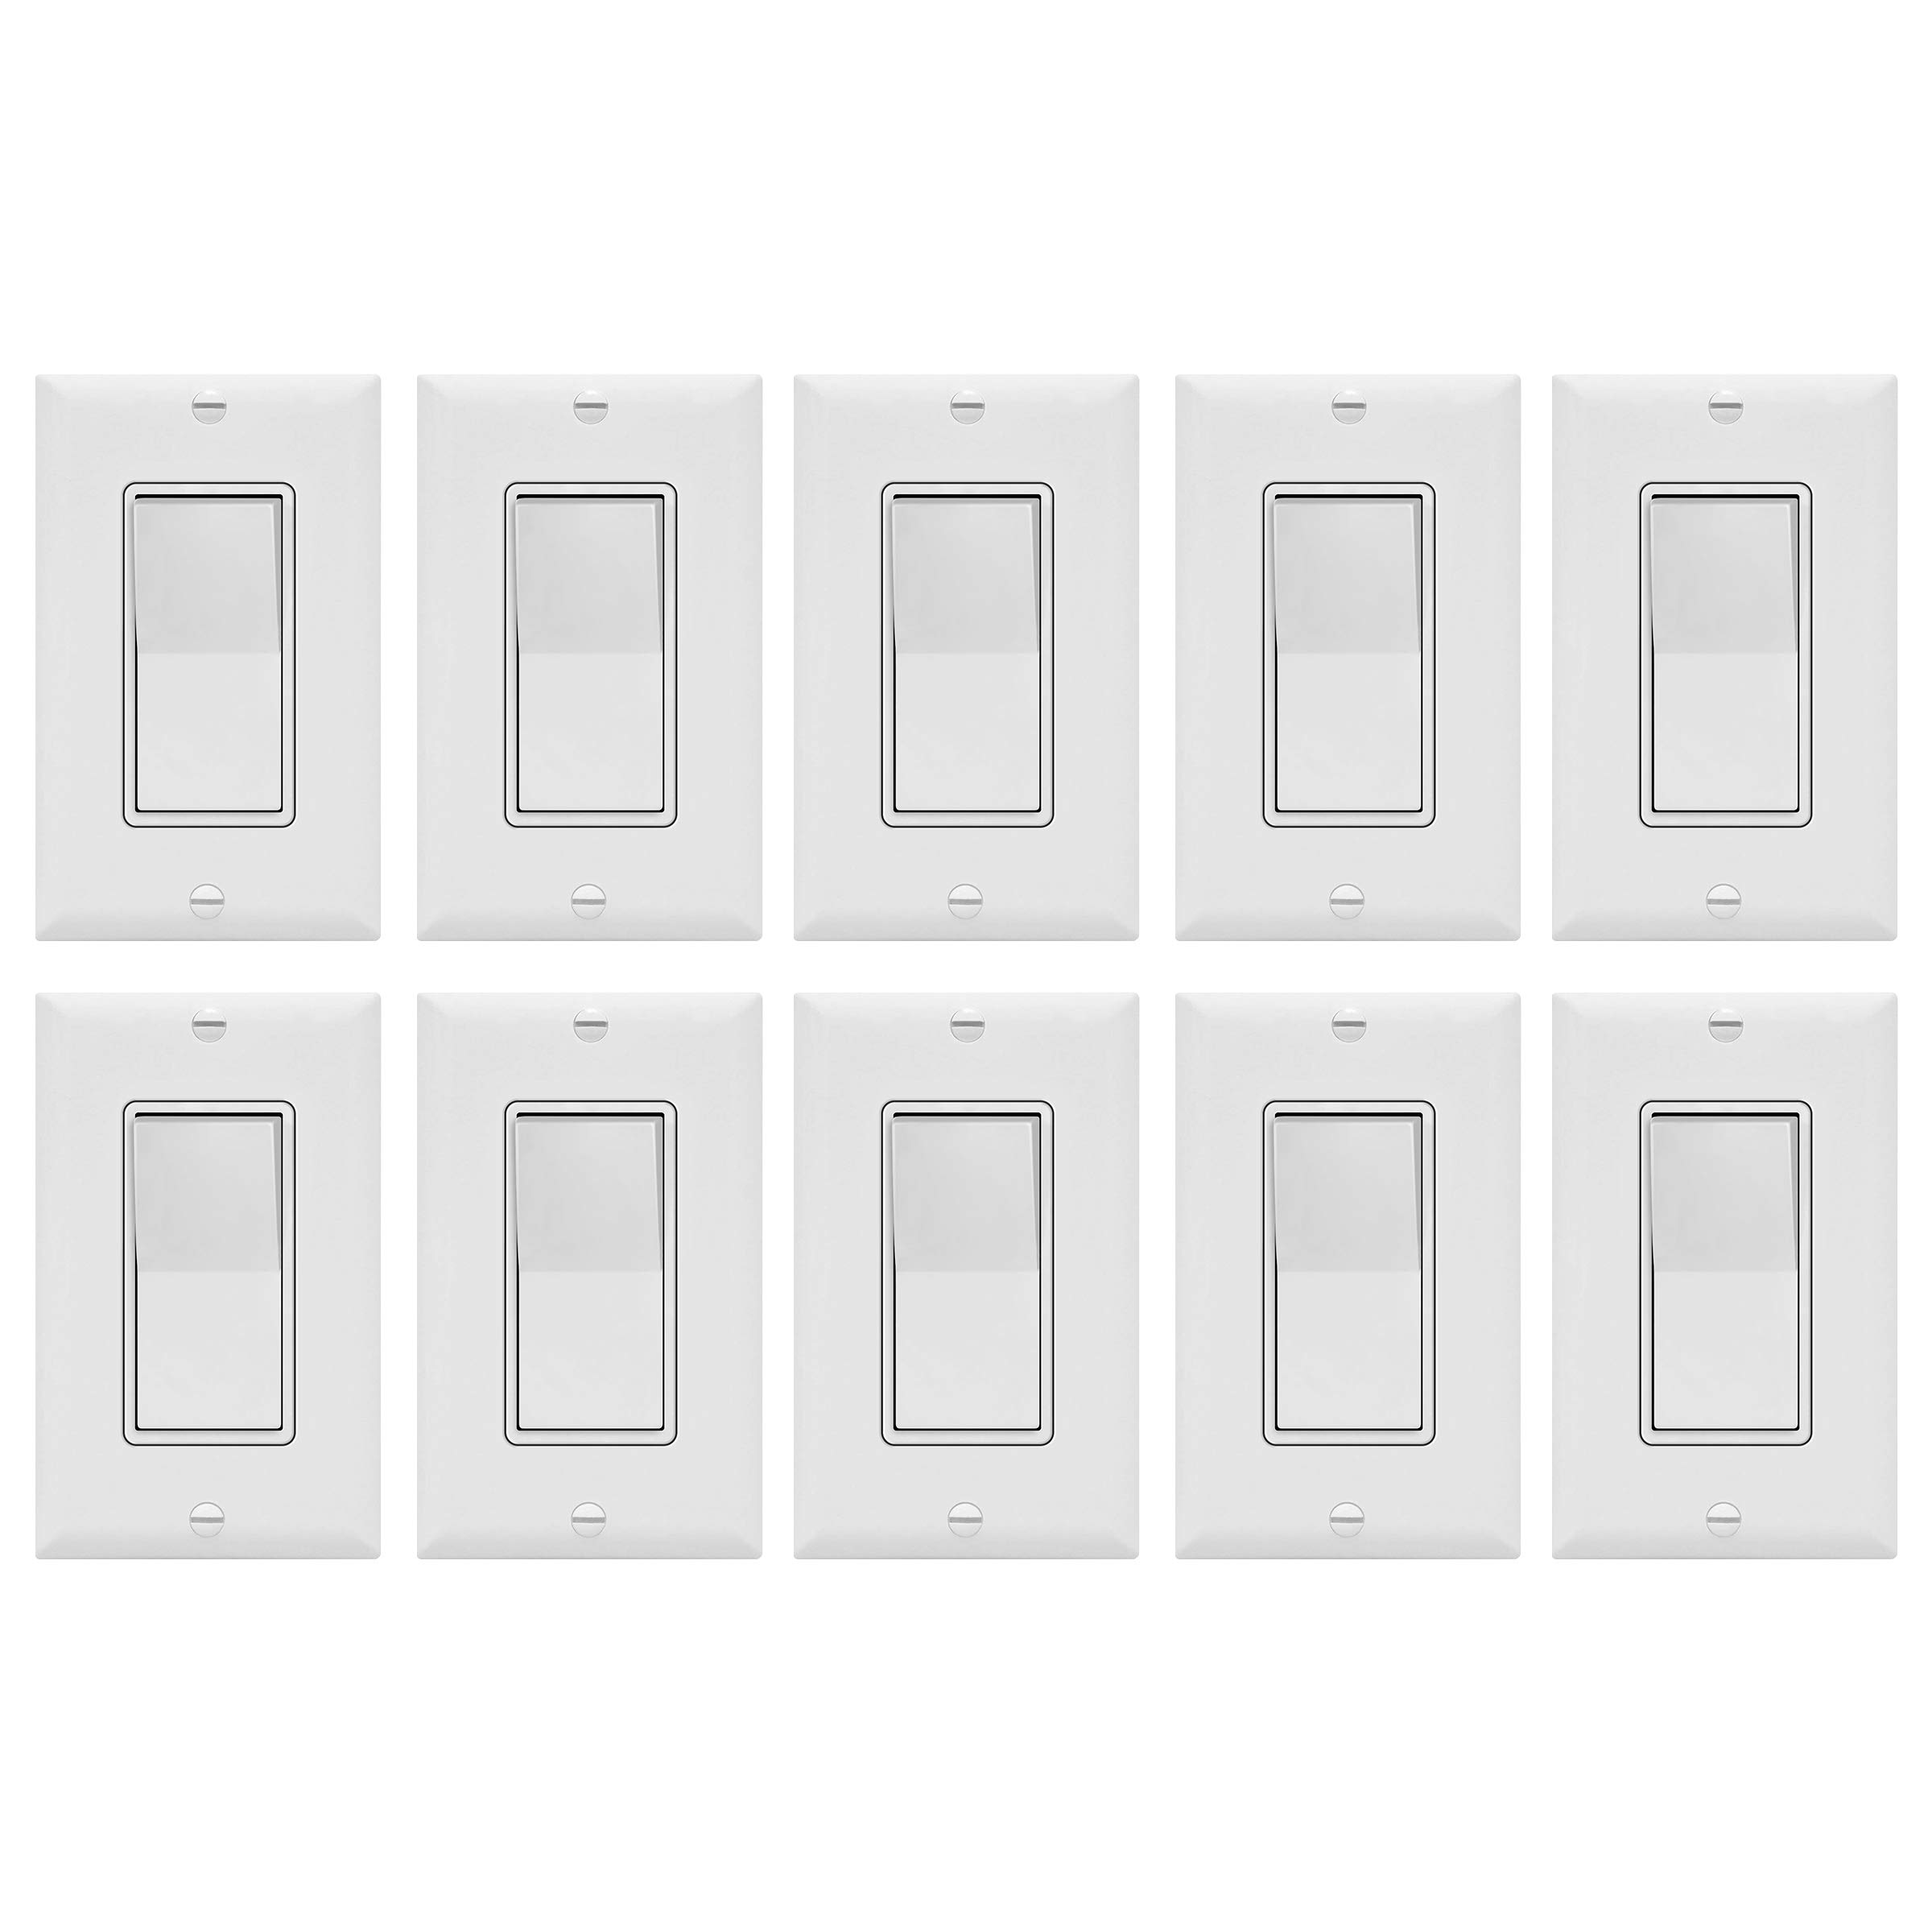 Enerlites Decorator On/Off Paddle Wall Switch with Covers, 91150-WWP | 15 Amp, 120-277VAC, Single Pole, 3 Wire, Grounding, Residential and Commercial Graded Light Switches, UL Listed | White - 10 Pack by ENERLITES